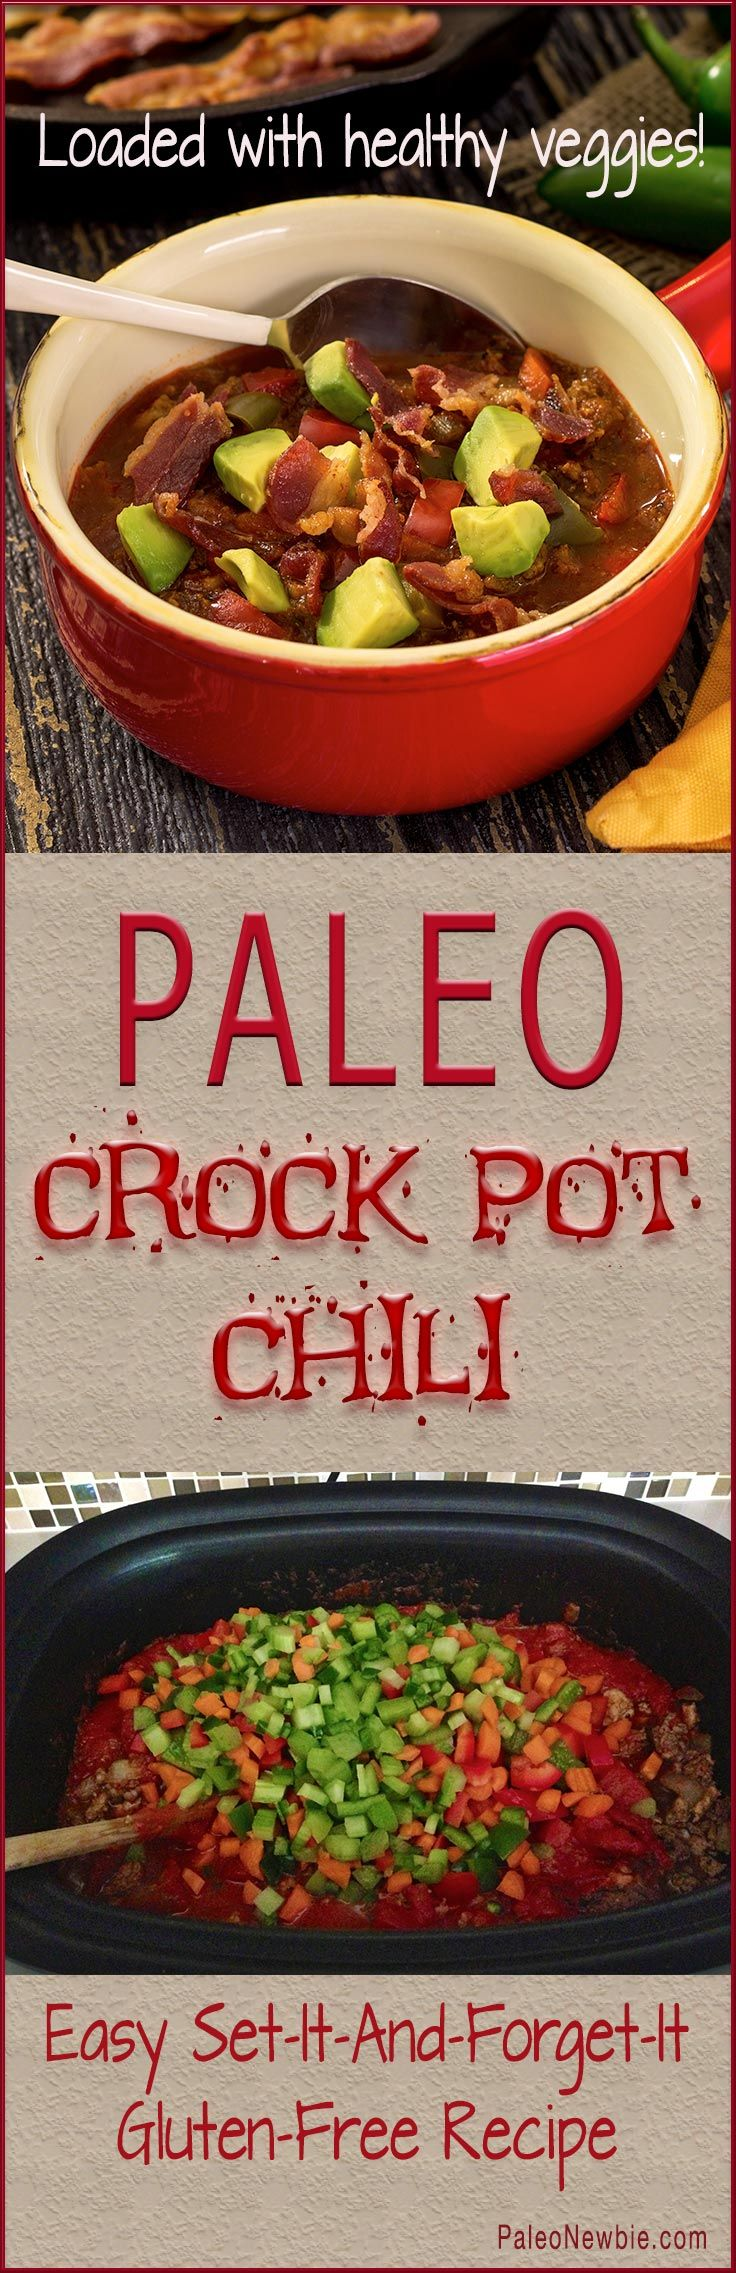 Healthy, hearty and super-simple slow cooker recipe for amazing chili...the most popular winter recipe on the site!